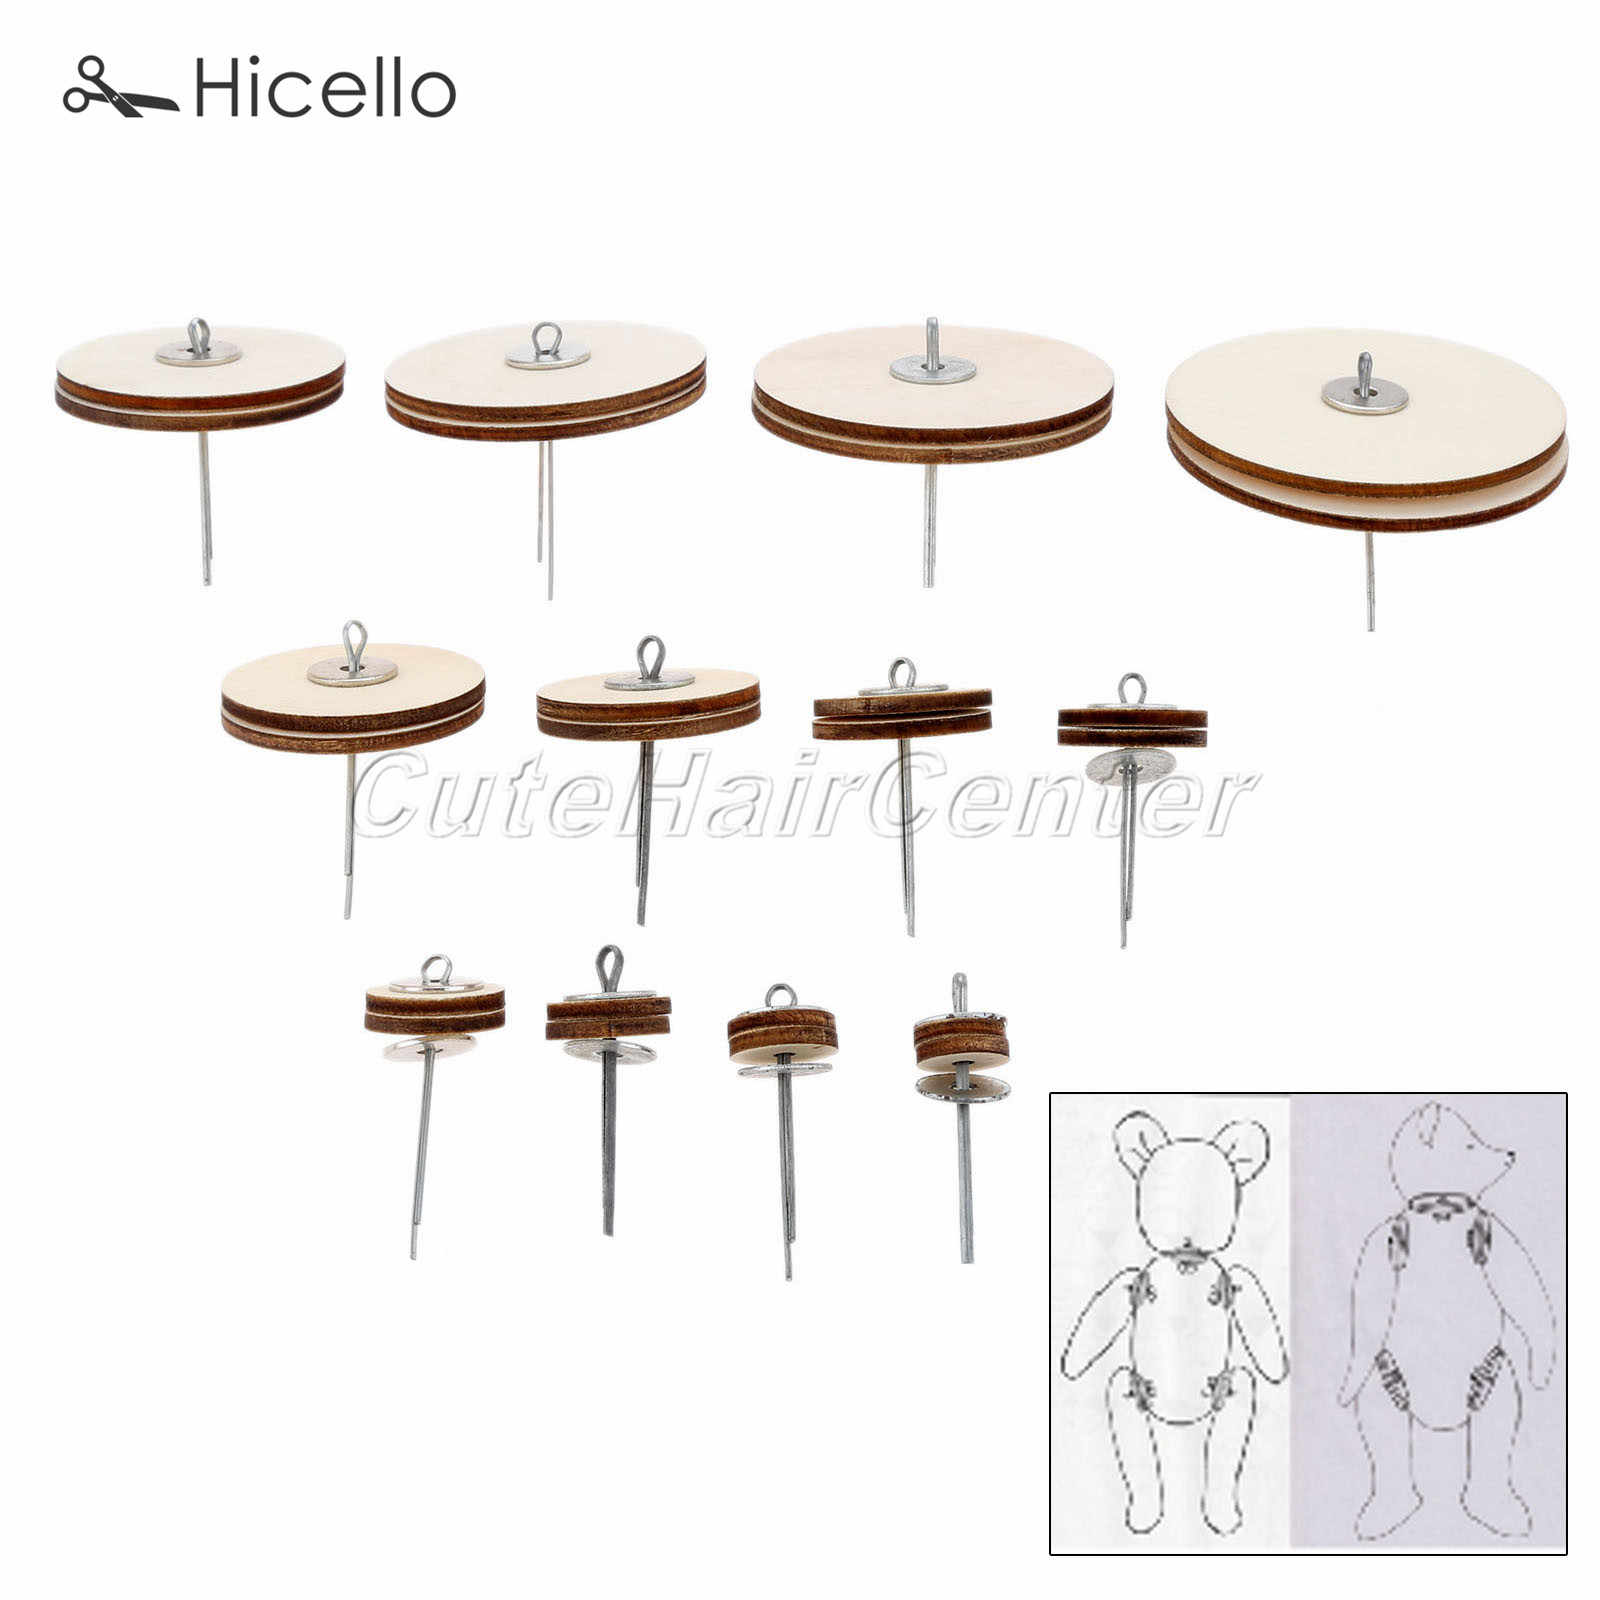 10Pcs Wood Joints Connectors for Teddy Bear Handmade Craft Children Kids Toy DIY